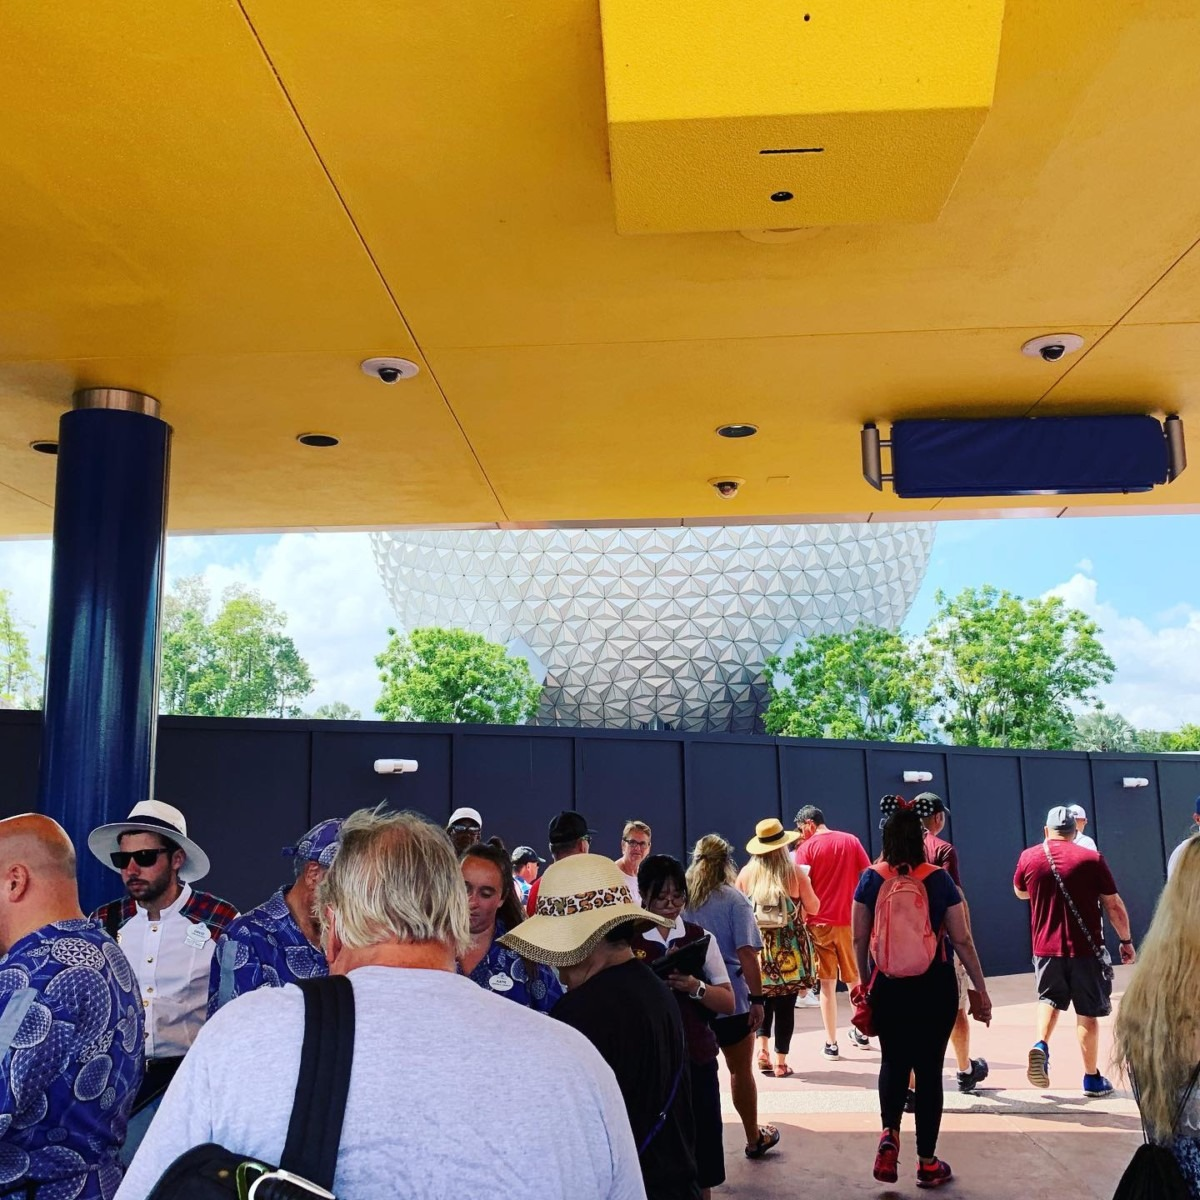 What's Different at Epcot's Food and Wine Festival? Get the scoop! #tasteepcot 3